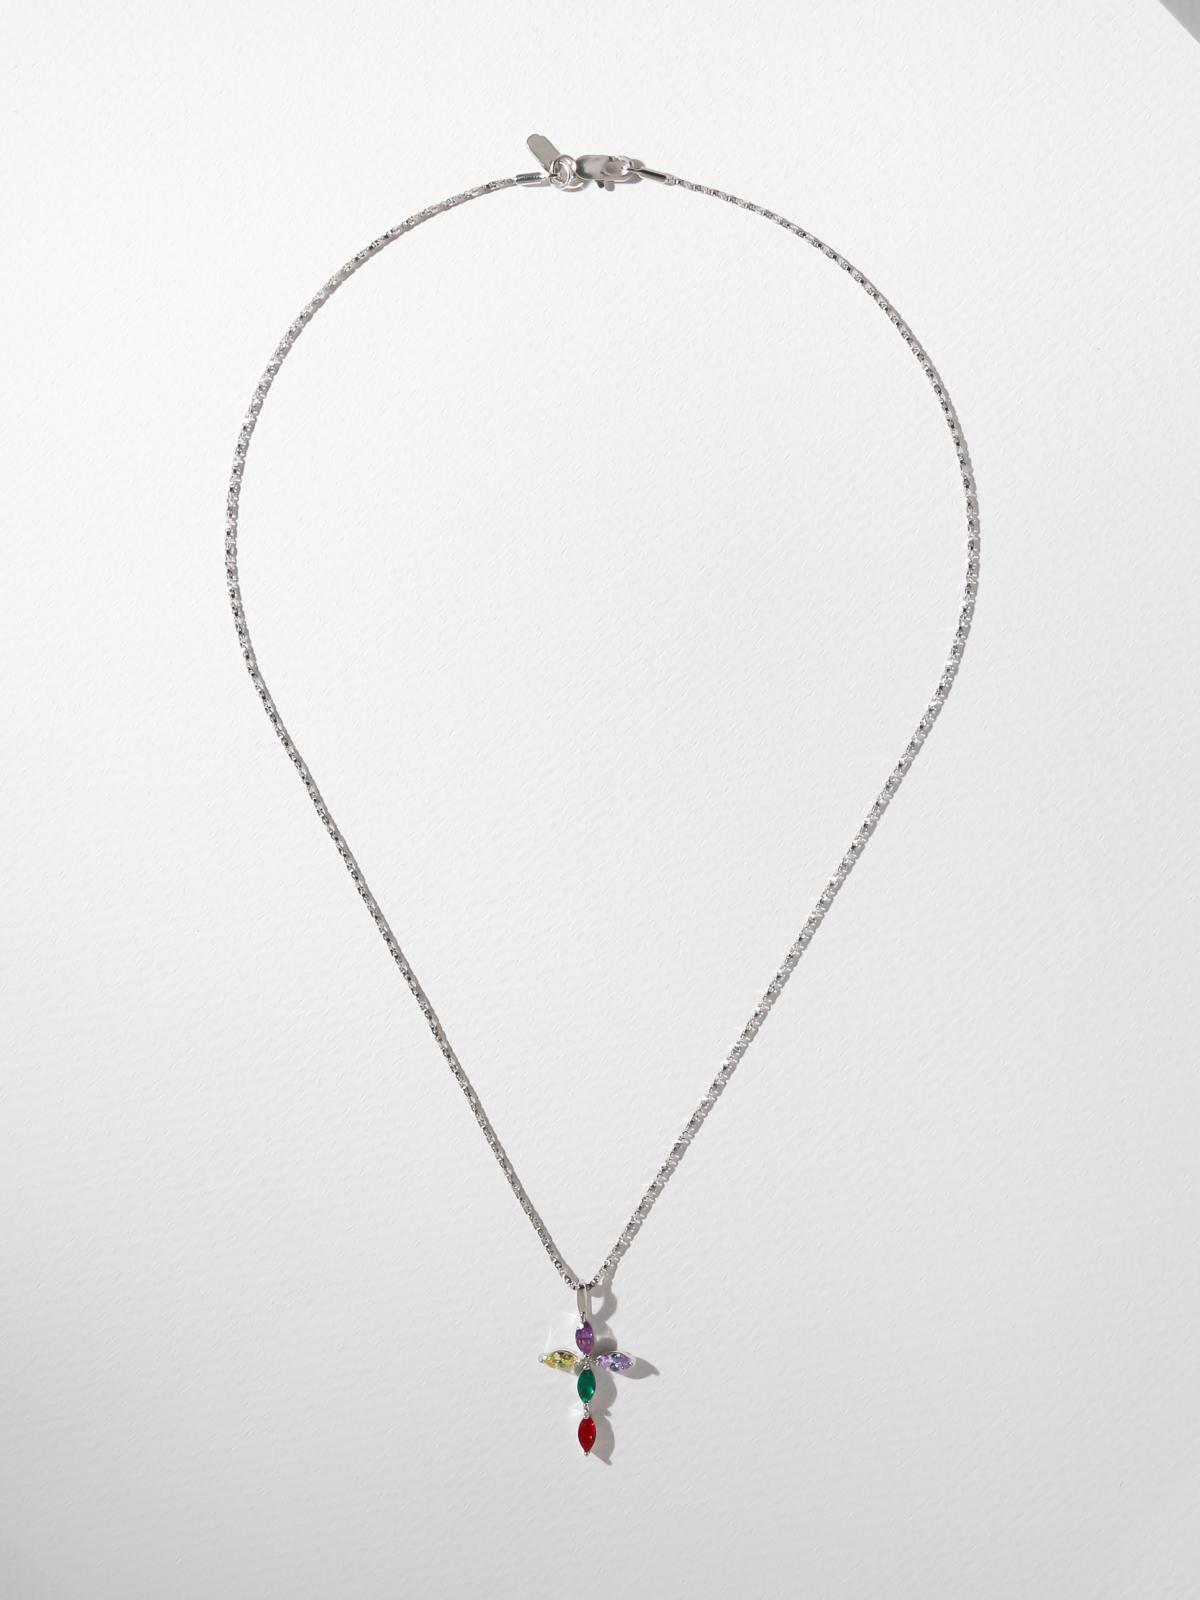 The Technicolor Necklace